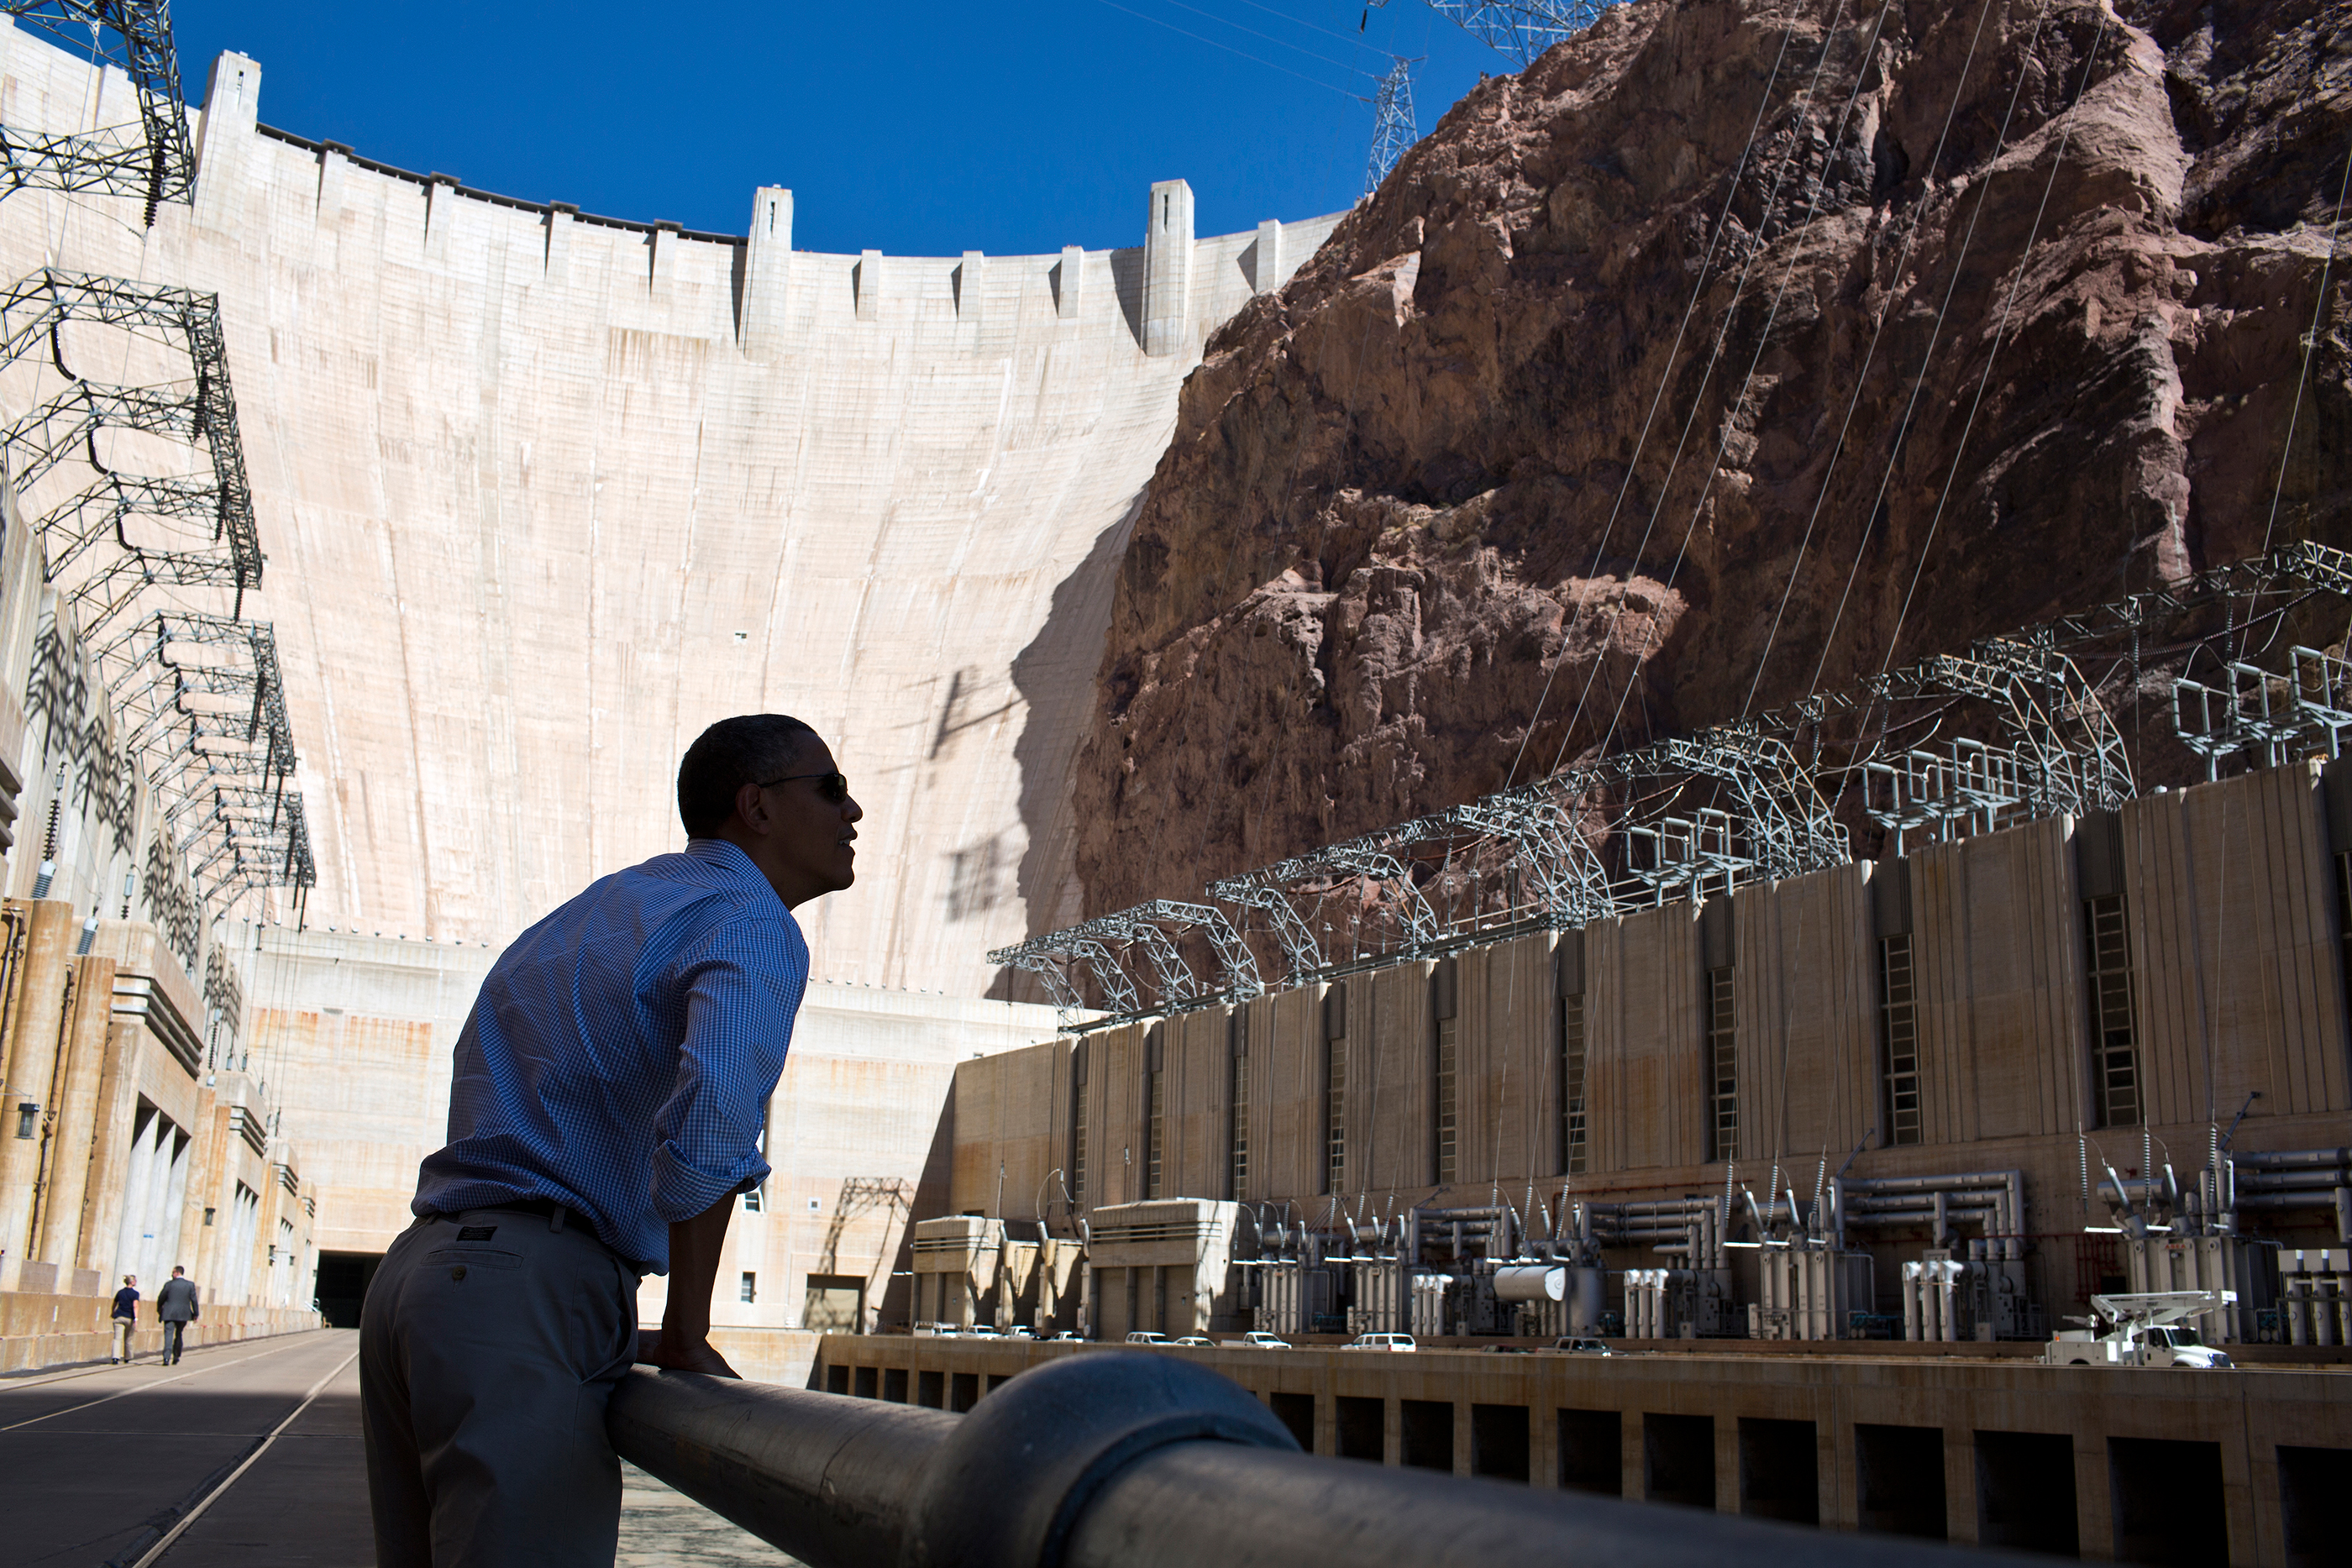 Nevada, Oct. 2, 2012. Viewing the Hoover Dam. (Official White House Photo by Pete Souza)